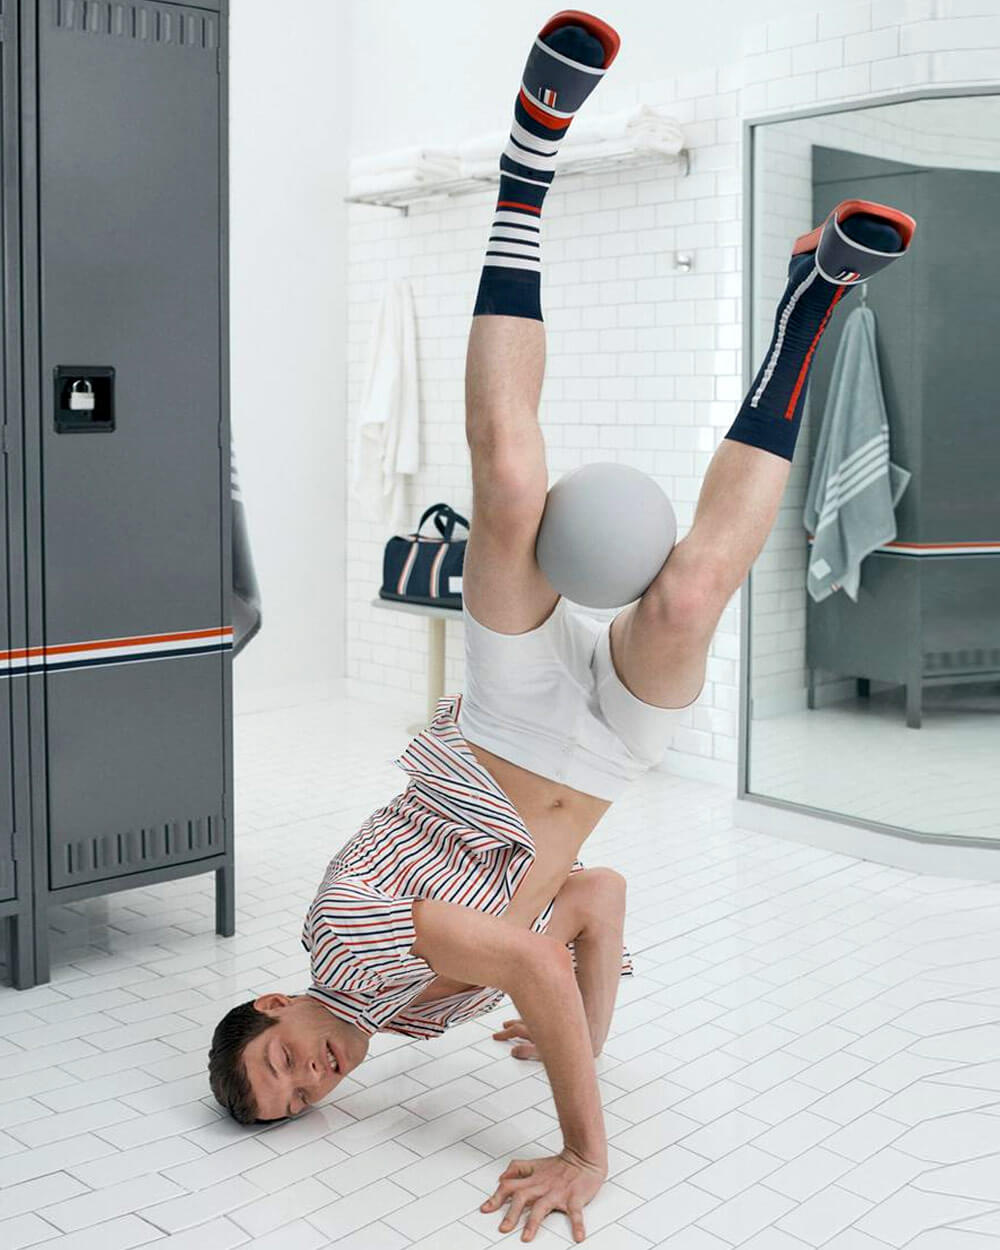 THOM BROWNE sports-inspired collection for Nordstrom's New Concepts